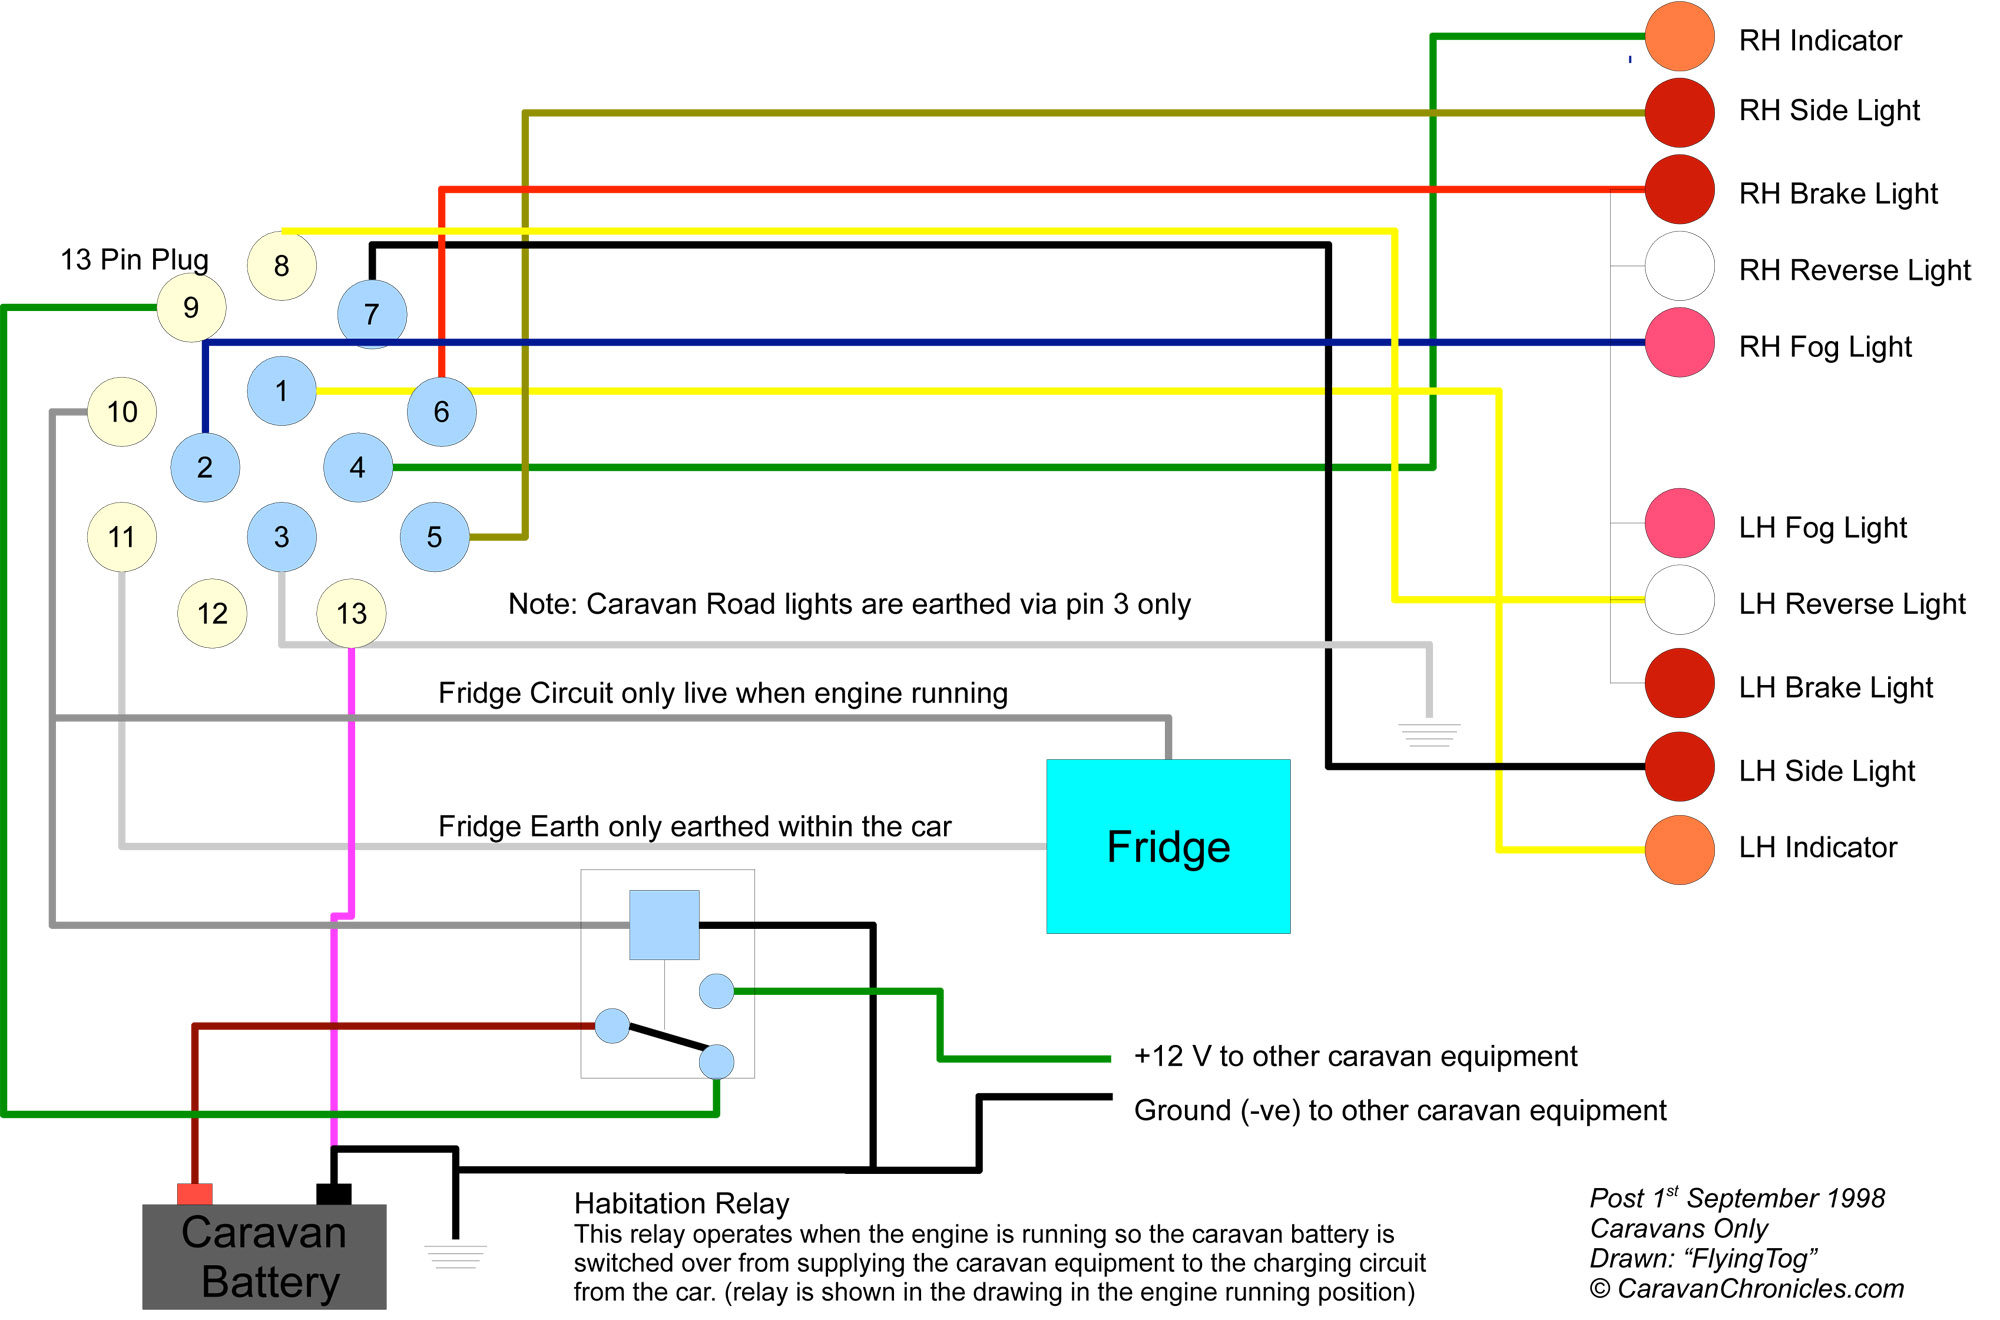 caravan wiring 13 pin understanding caravan and tow car electrics caravan chronicles Trailer Wiring Diagram at edmiracle.co